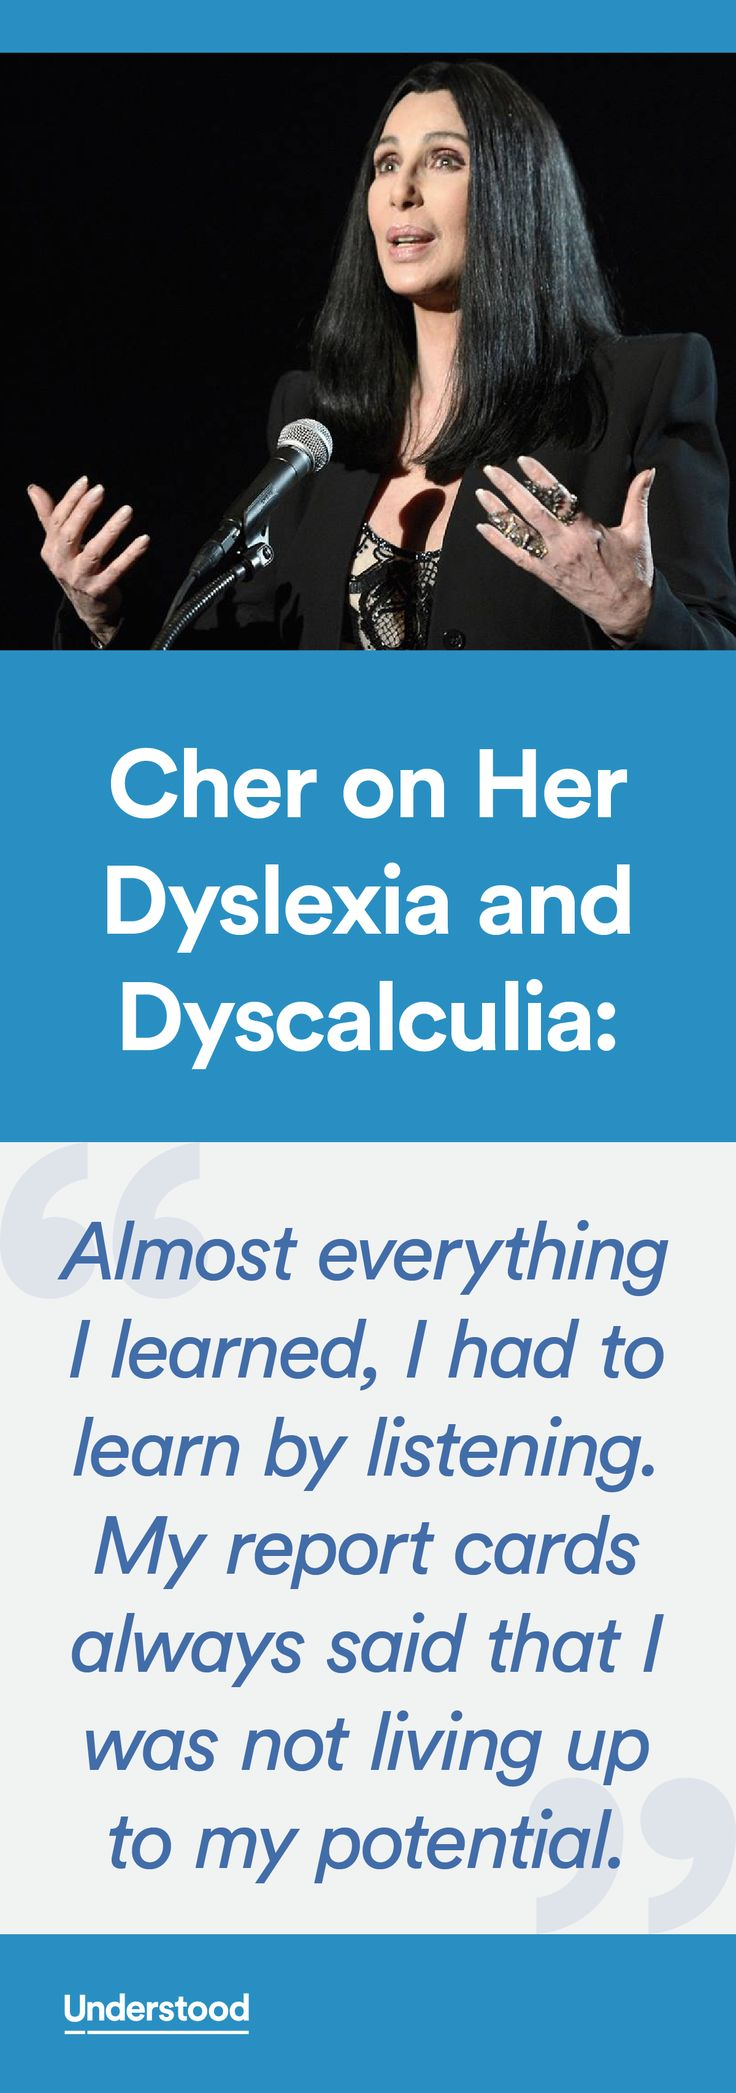 The importance of the issue of dyslexia in children